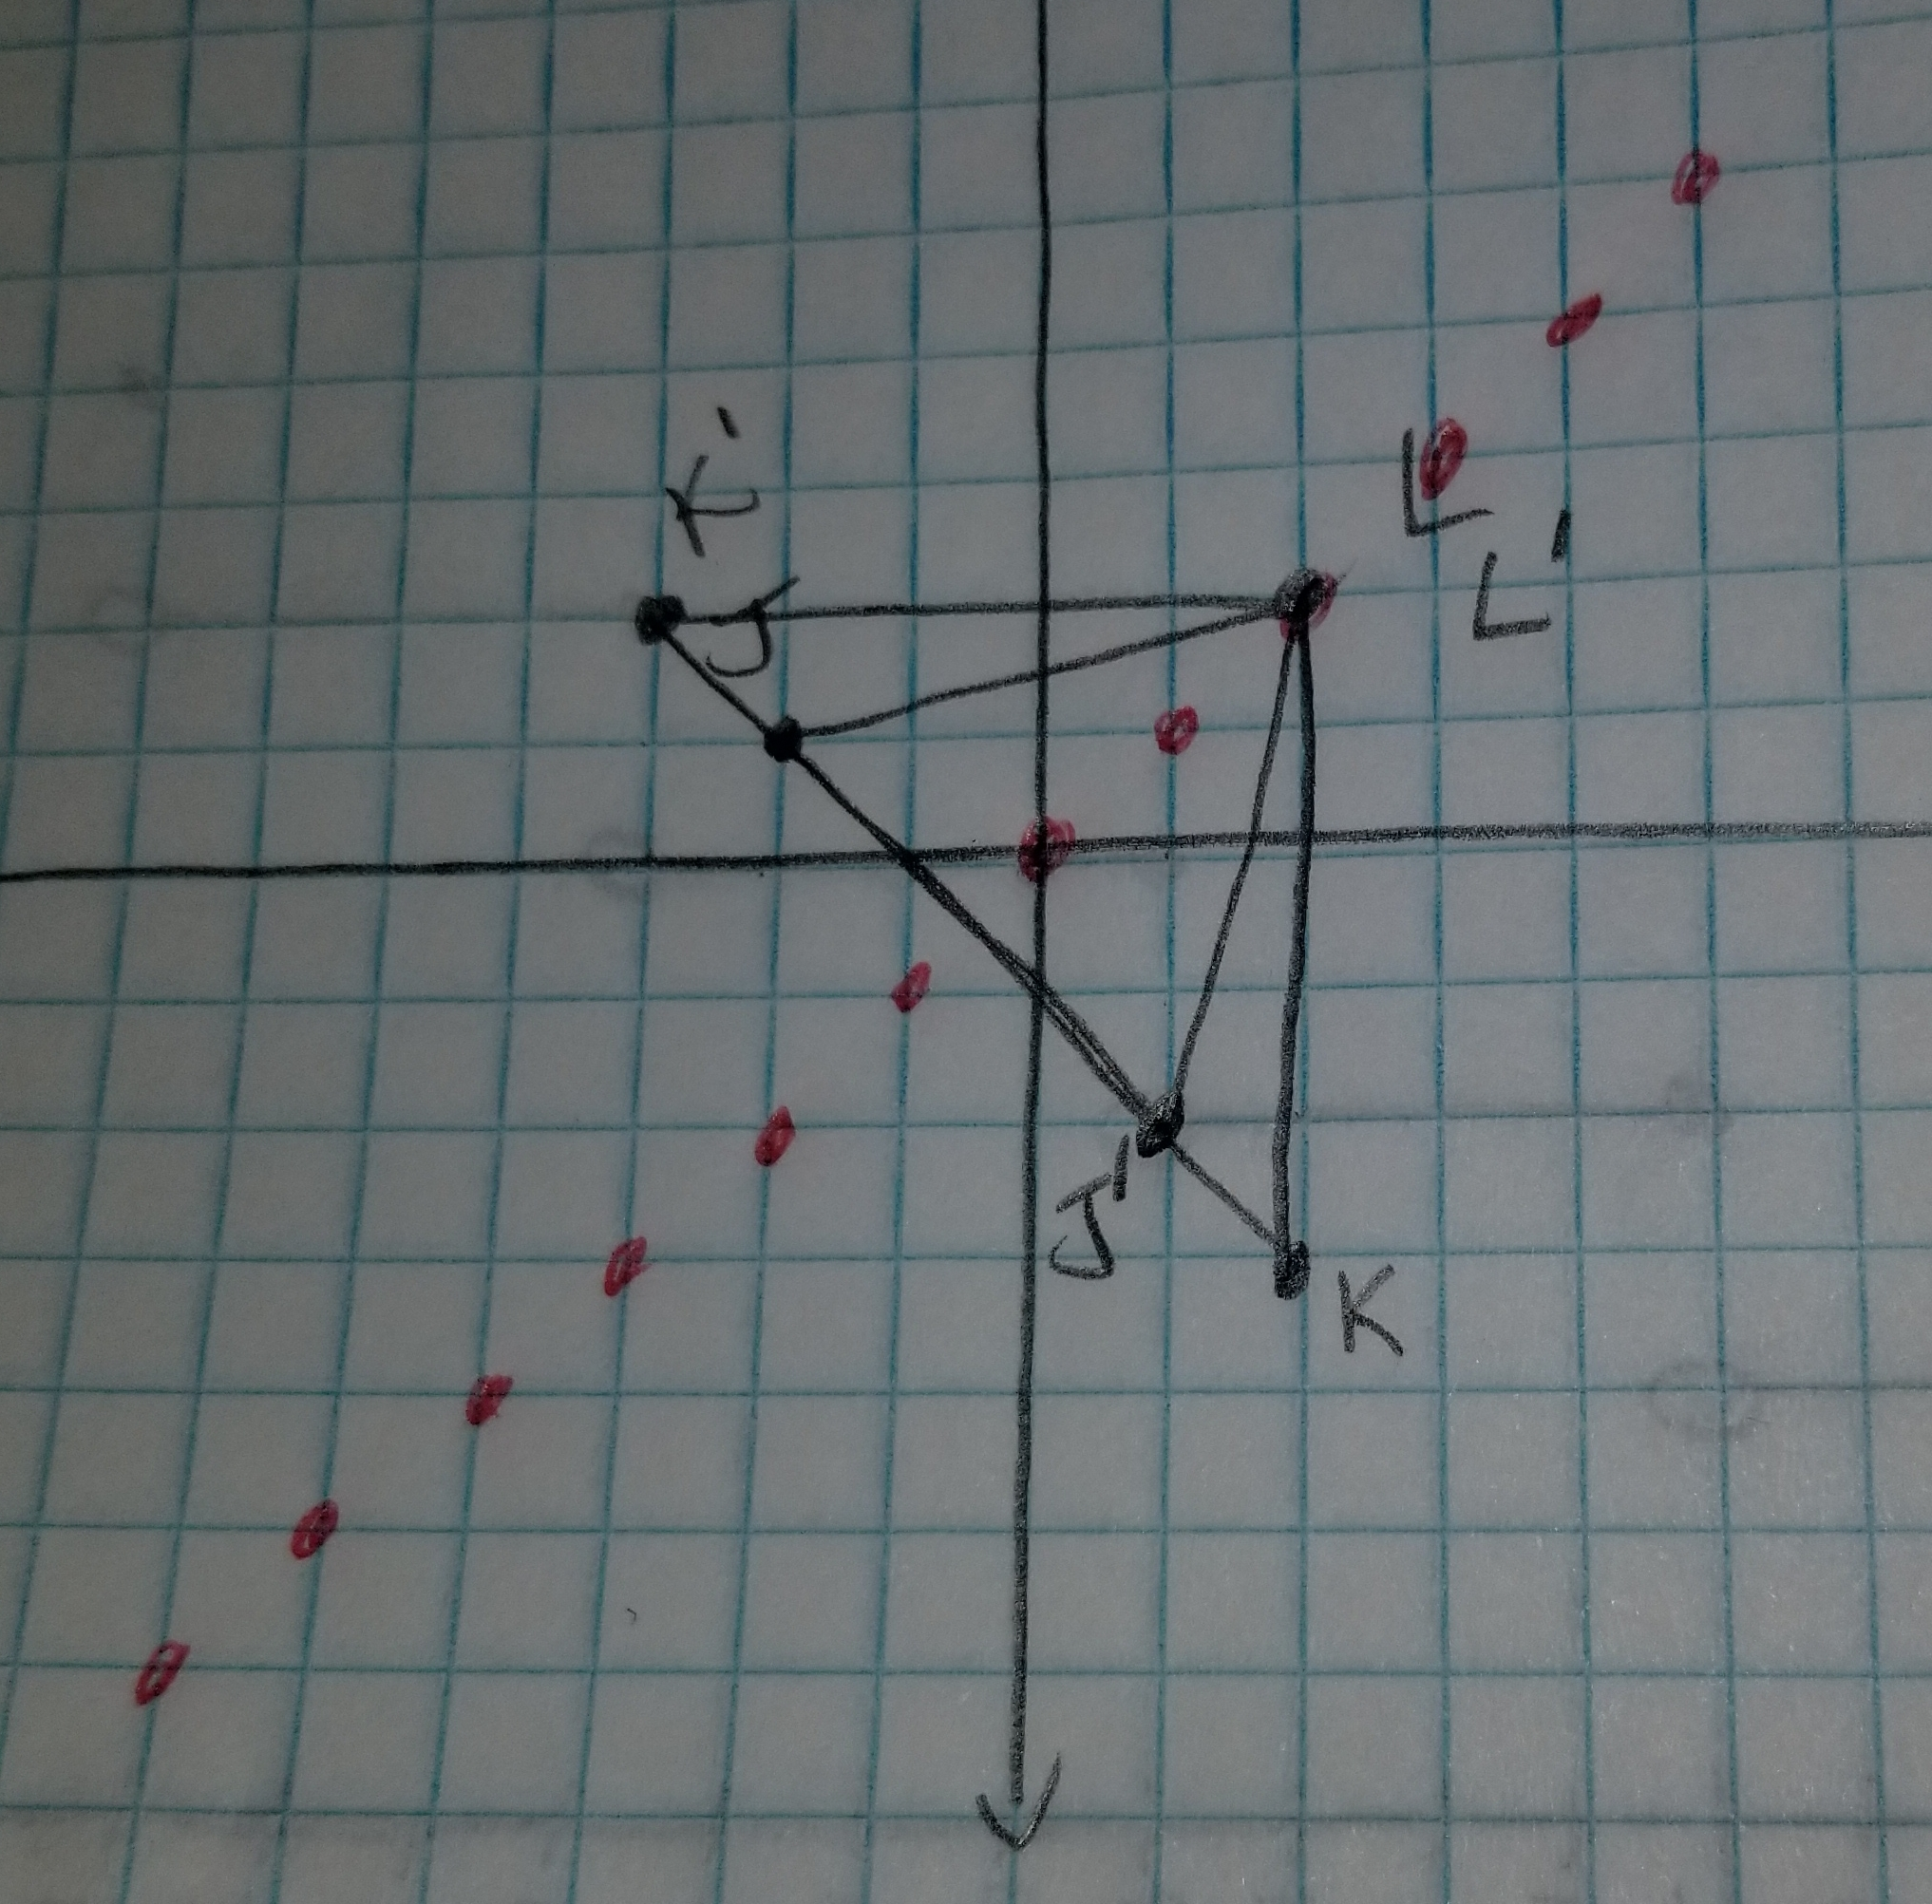 The vertices of triangle jkl are j(-2,1), k(2,-3), and l(2 ...